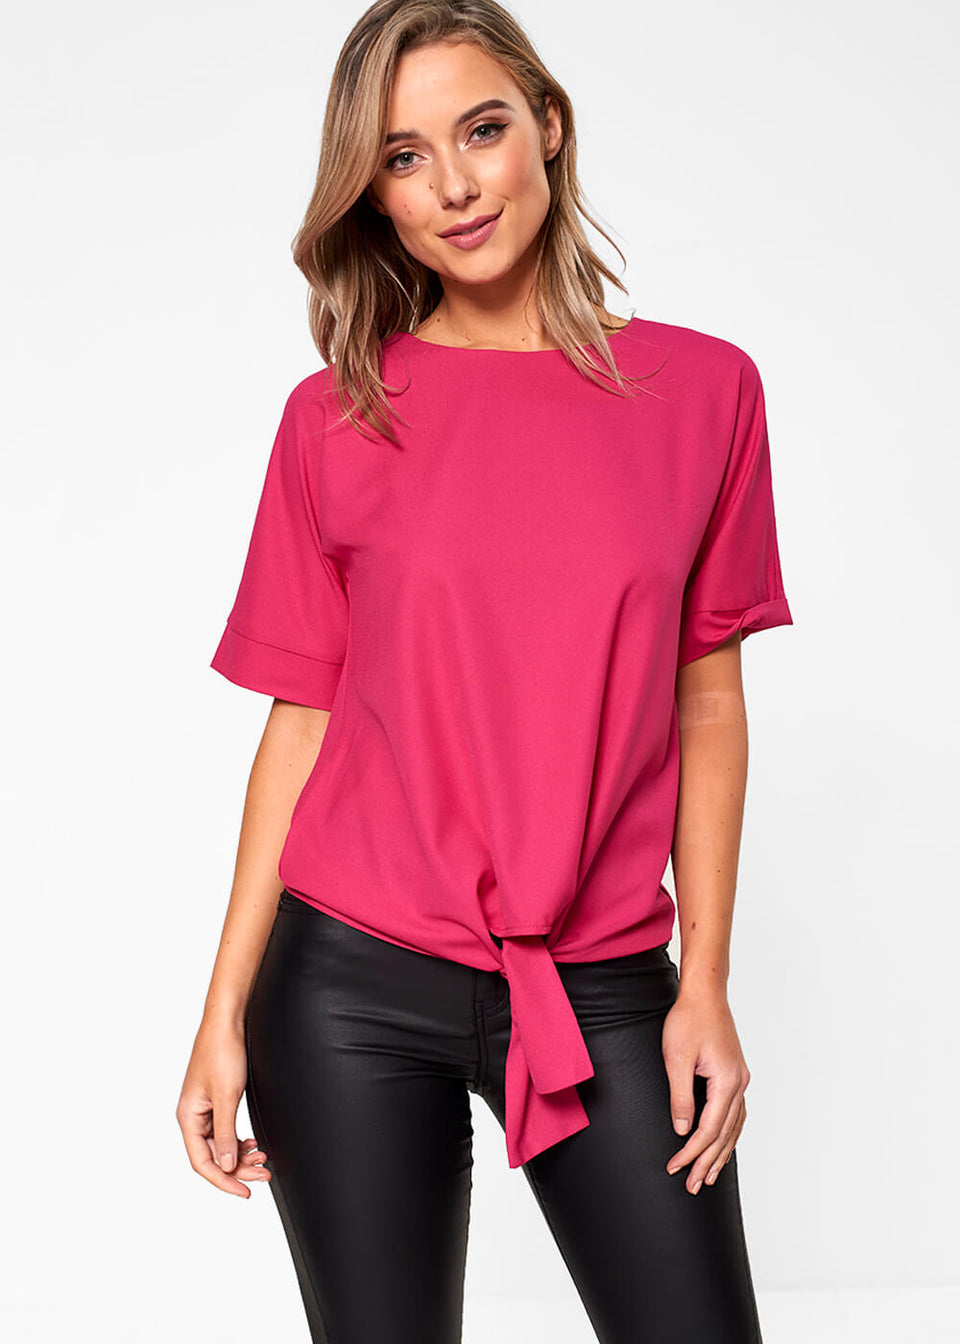 01a6b6a6fbc5c Marc Angelo Tops Collection